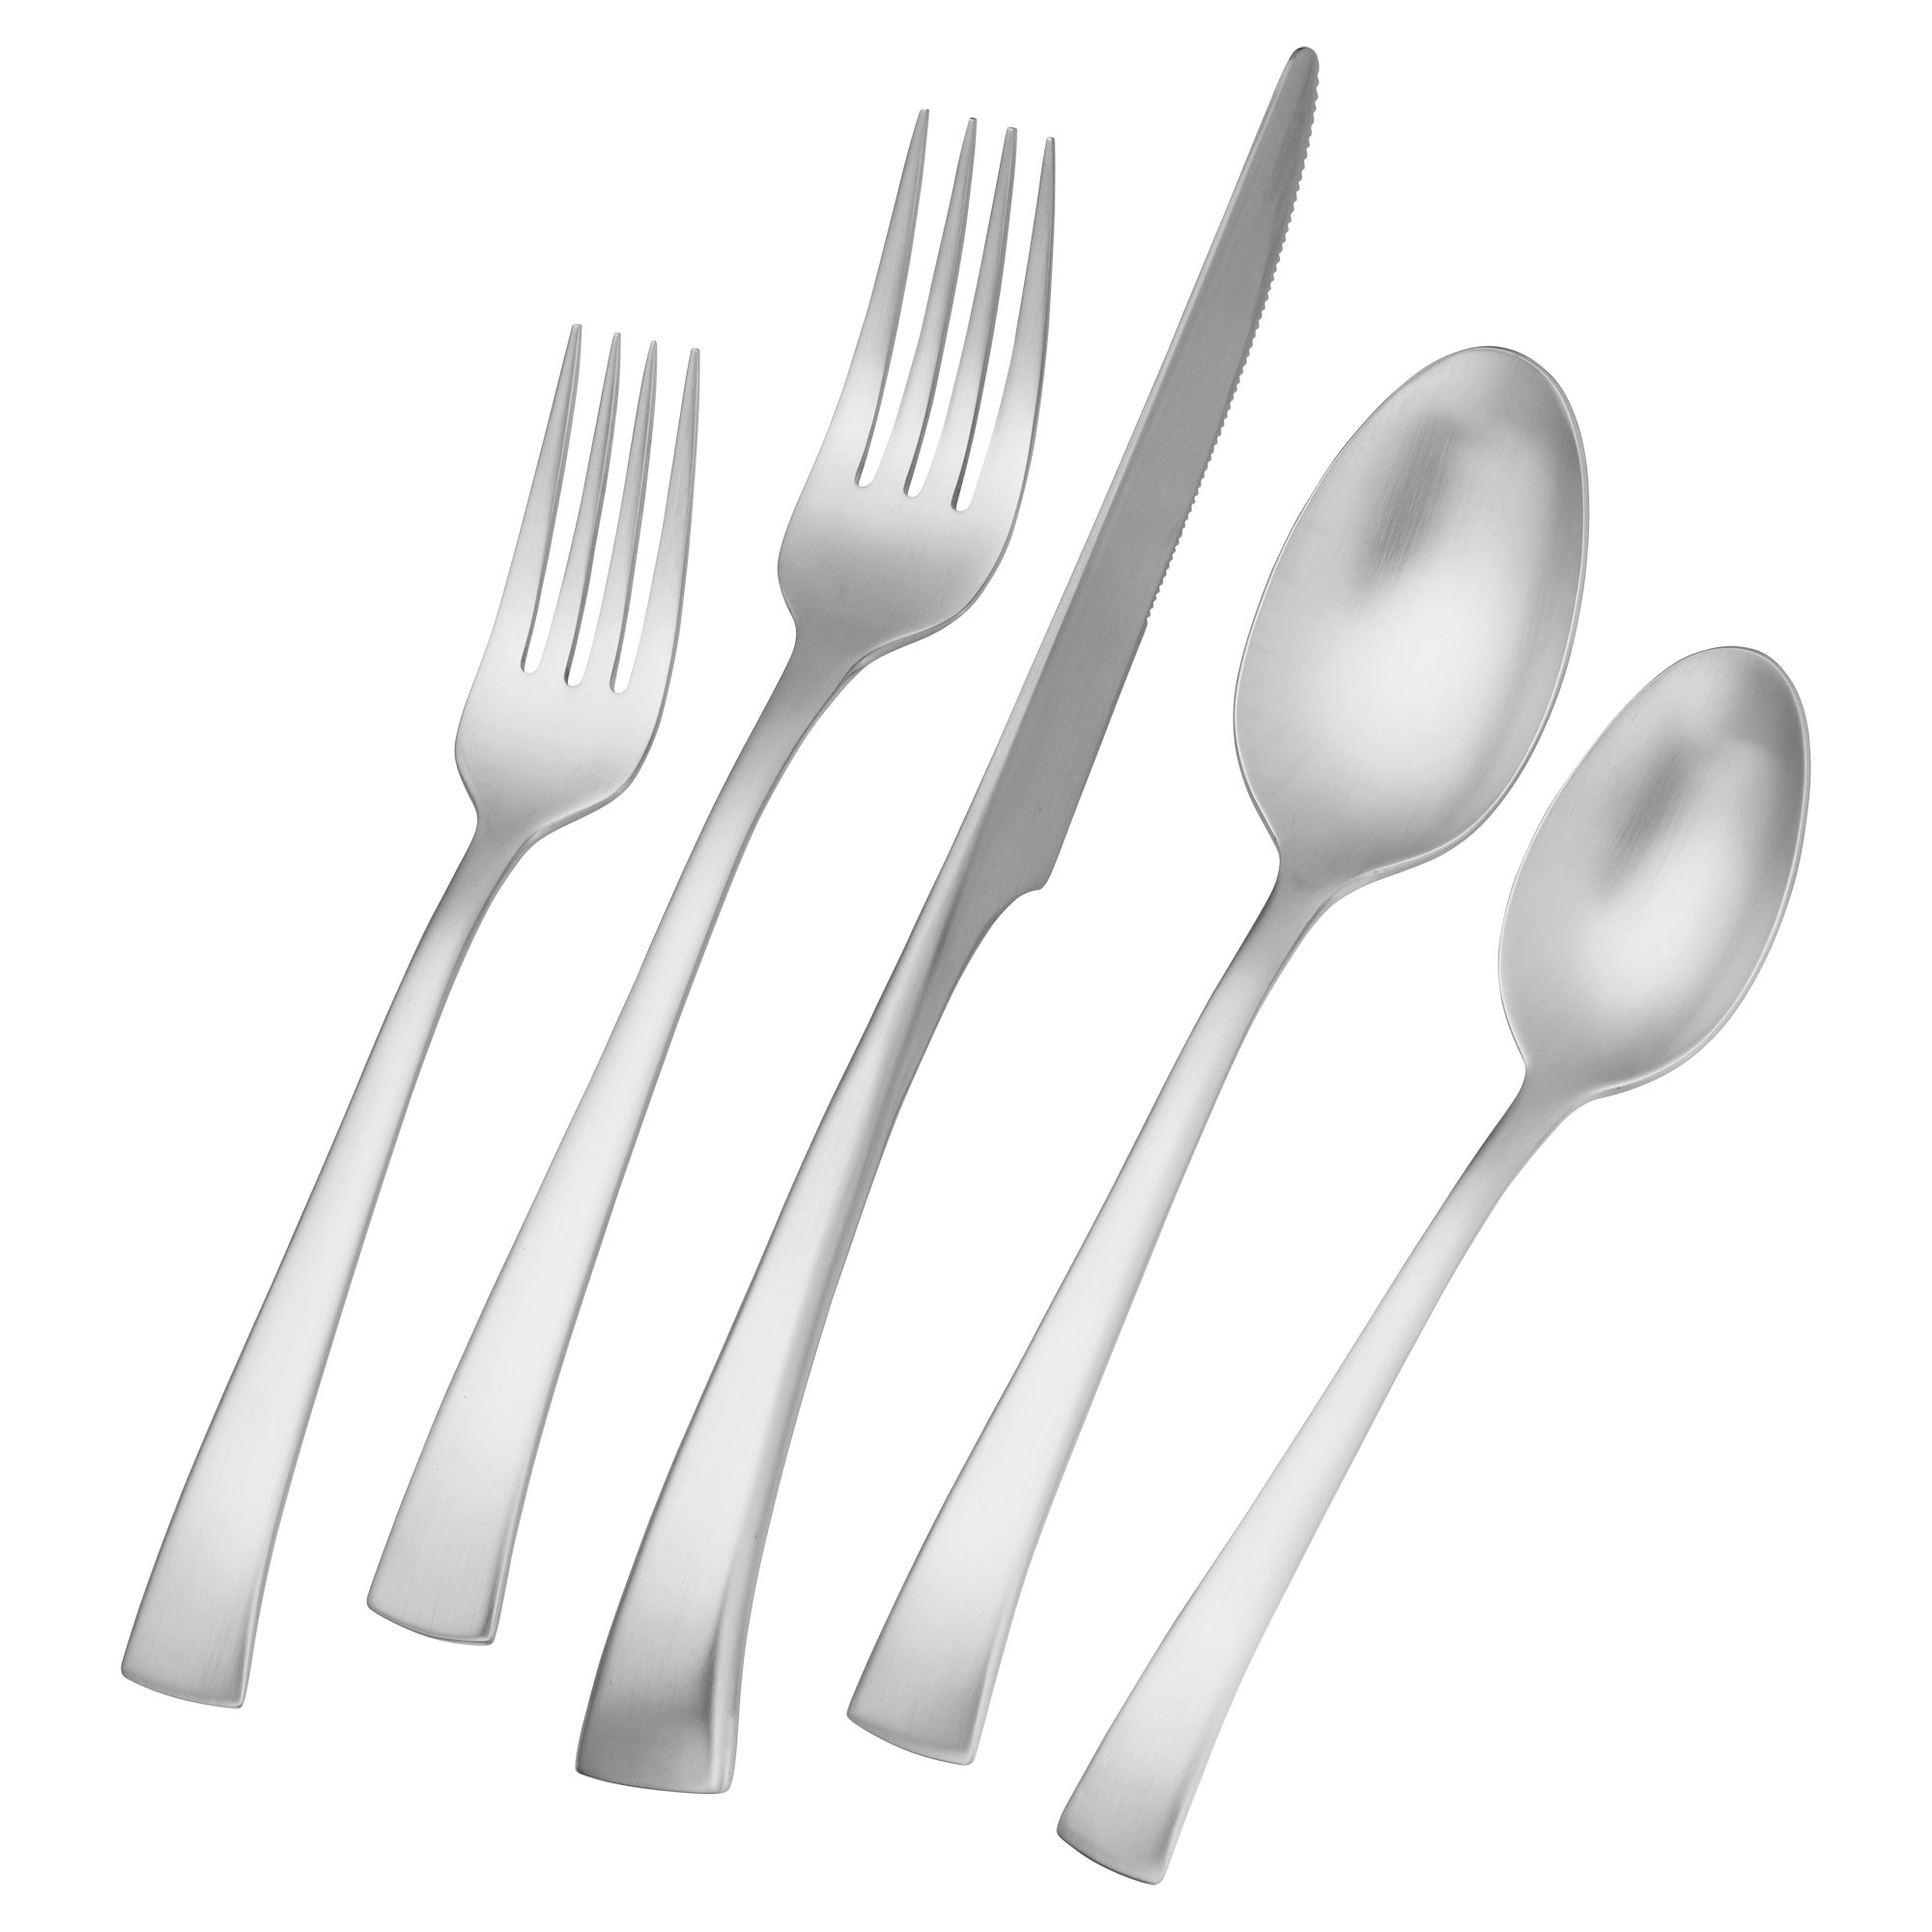 Zwilling JA Henckels 22769-345 Bellasera Satin 45-Piece 18/10'' Stainless Steel Flatware Set, Silver by ZWILLING J.A. Henckels (Image #1)